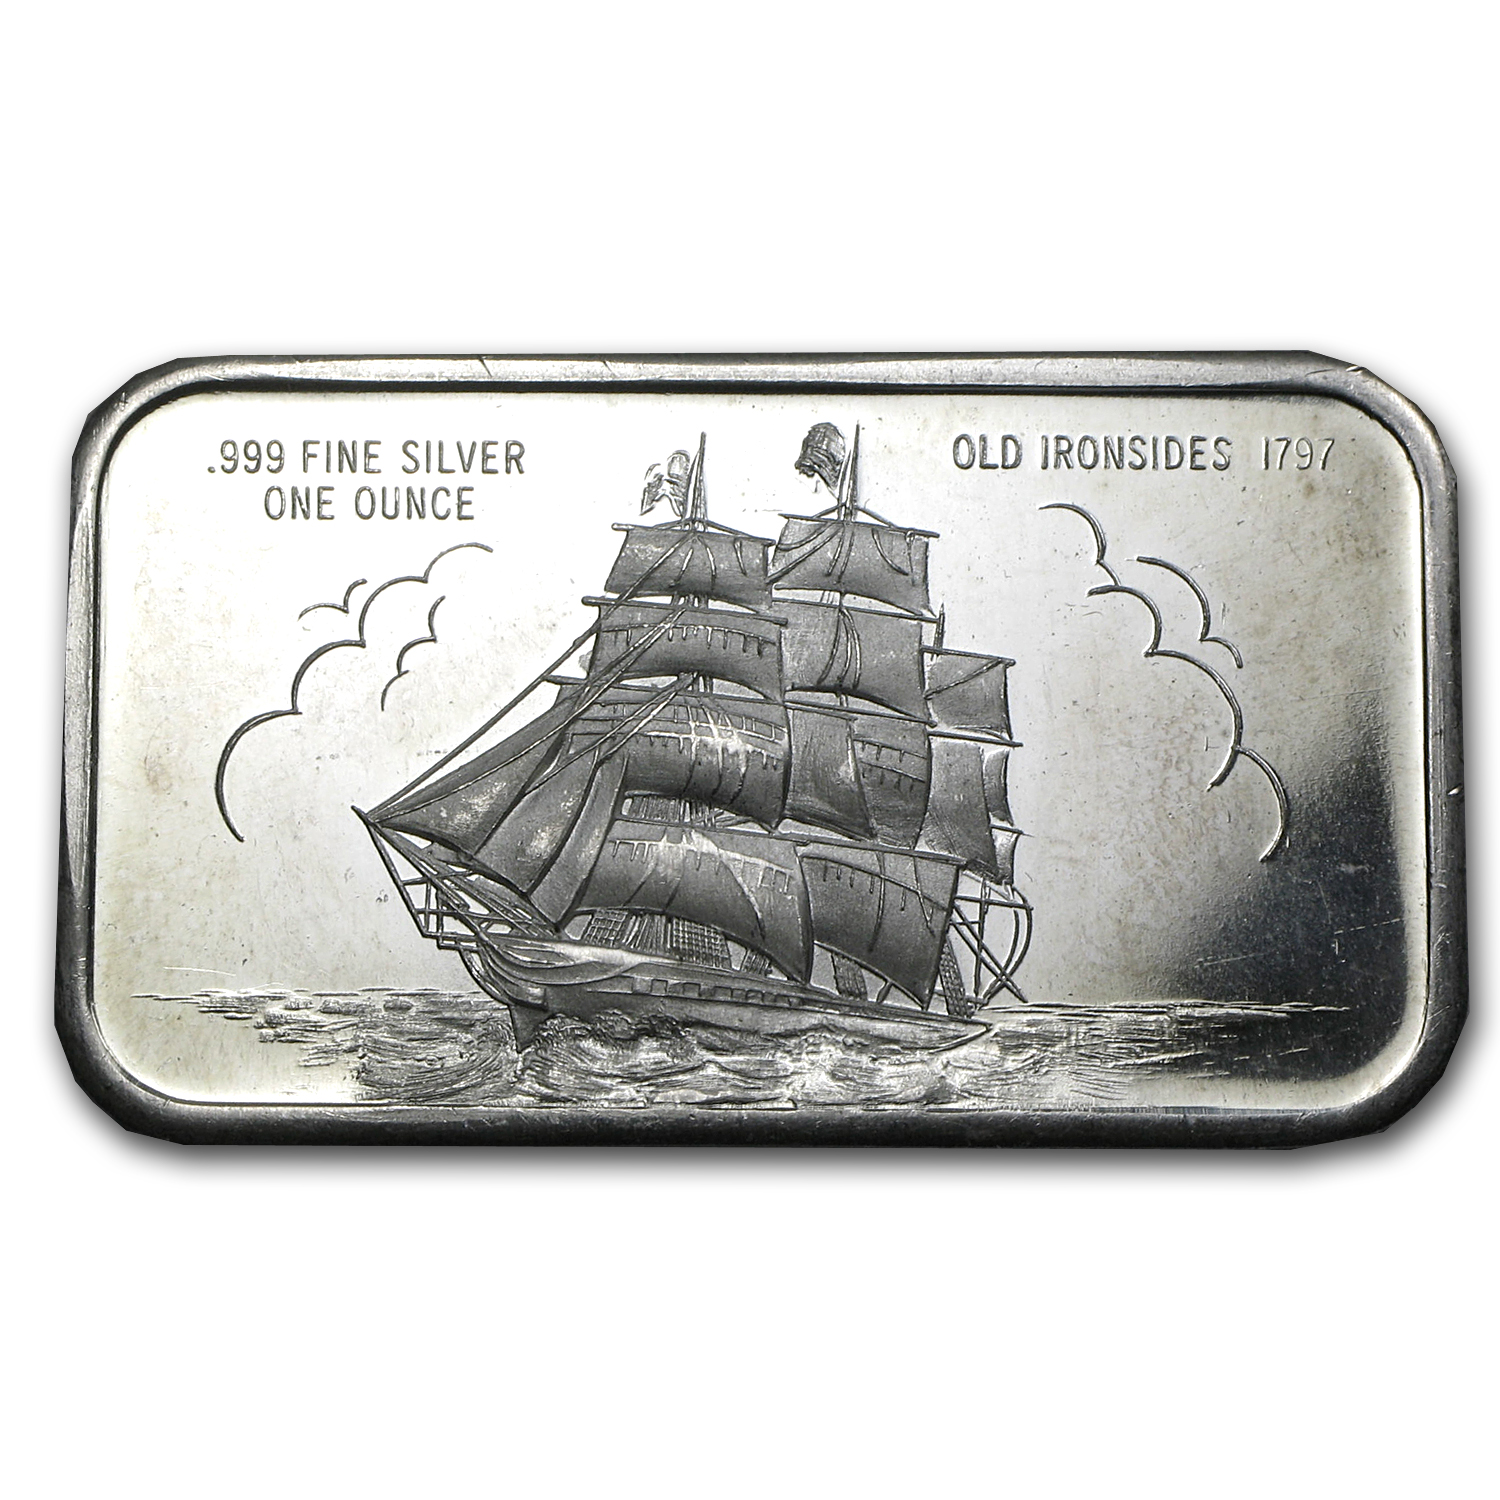 1 oz Silver Bar - Old Ironsides Ship